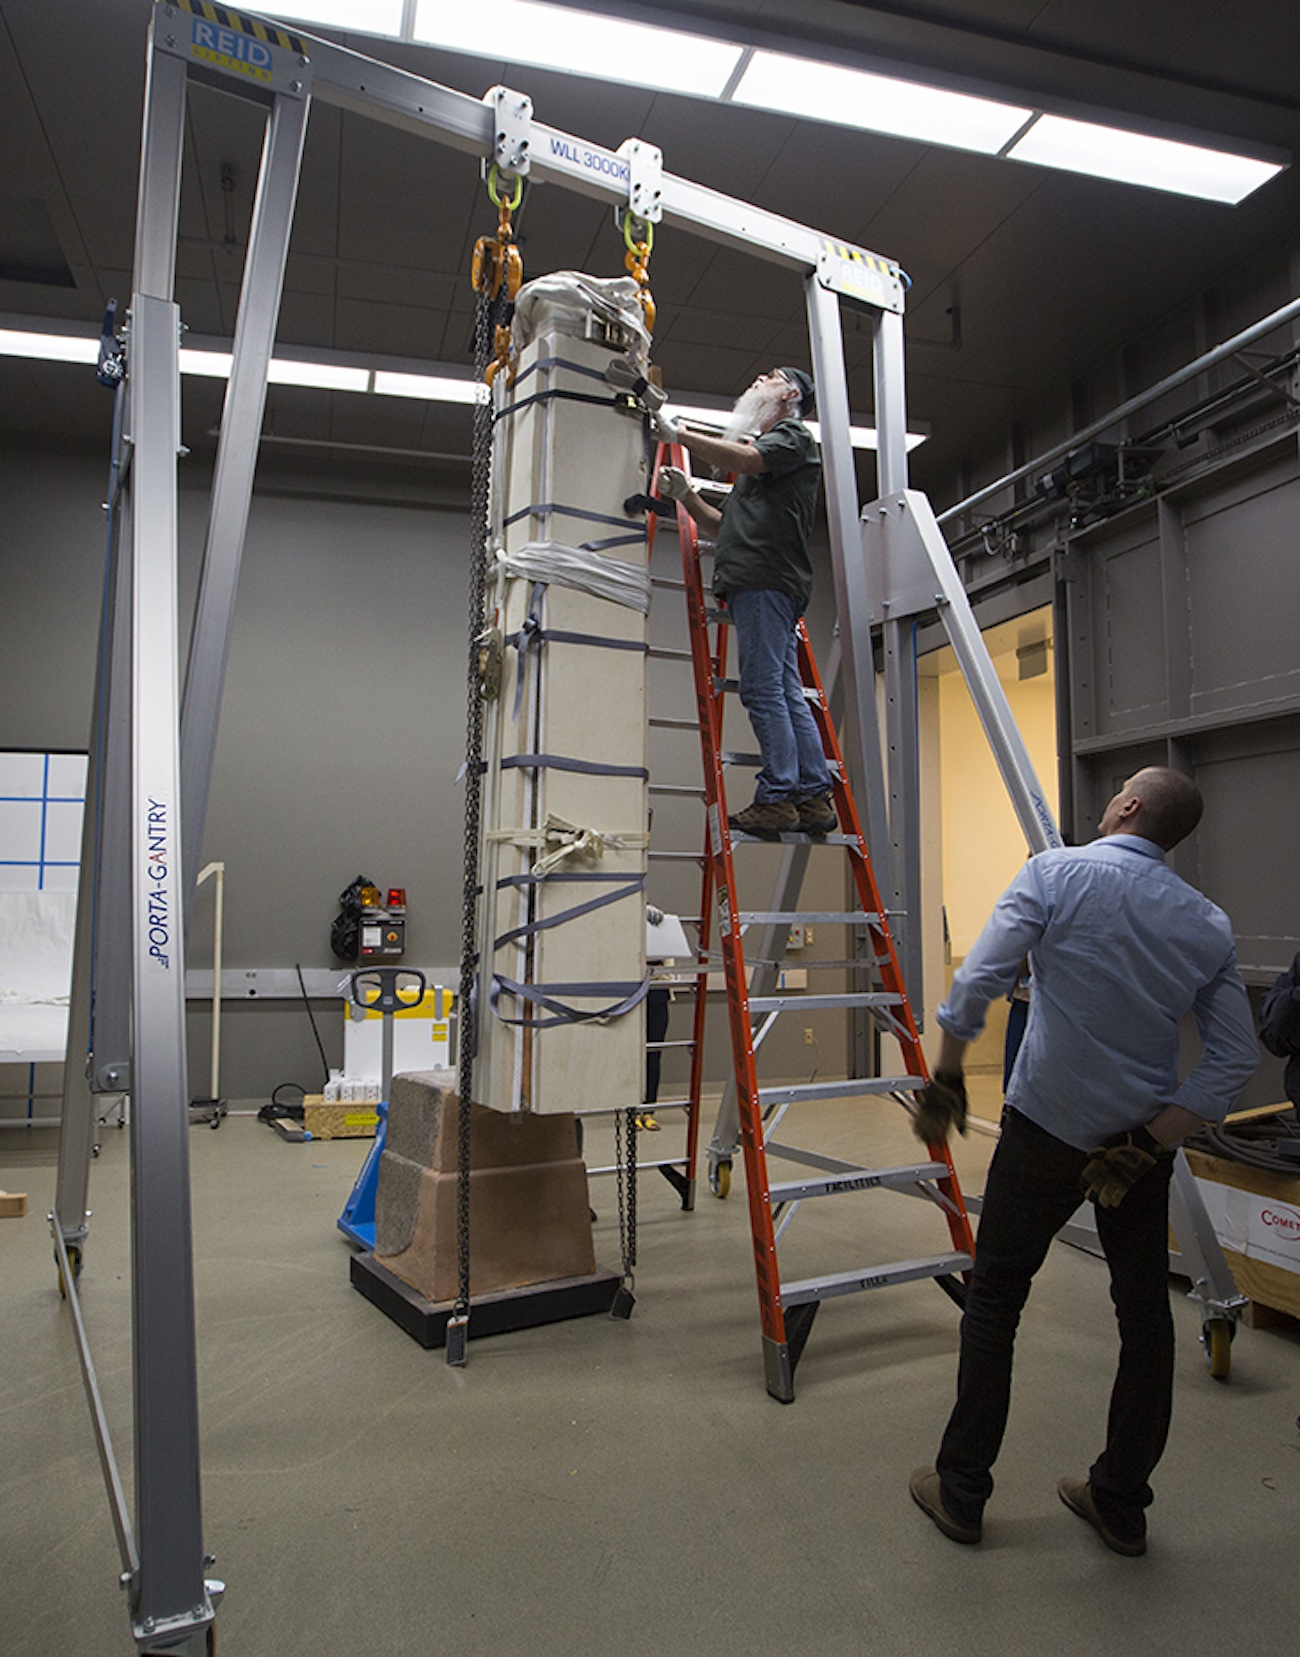 A man on a ladder checks the position of an obelisk that is standing upright in packing material